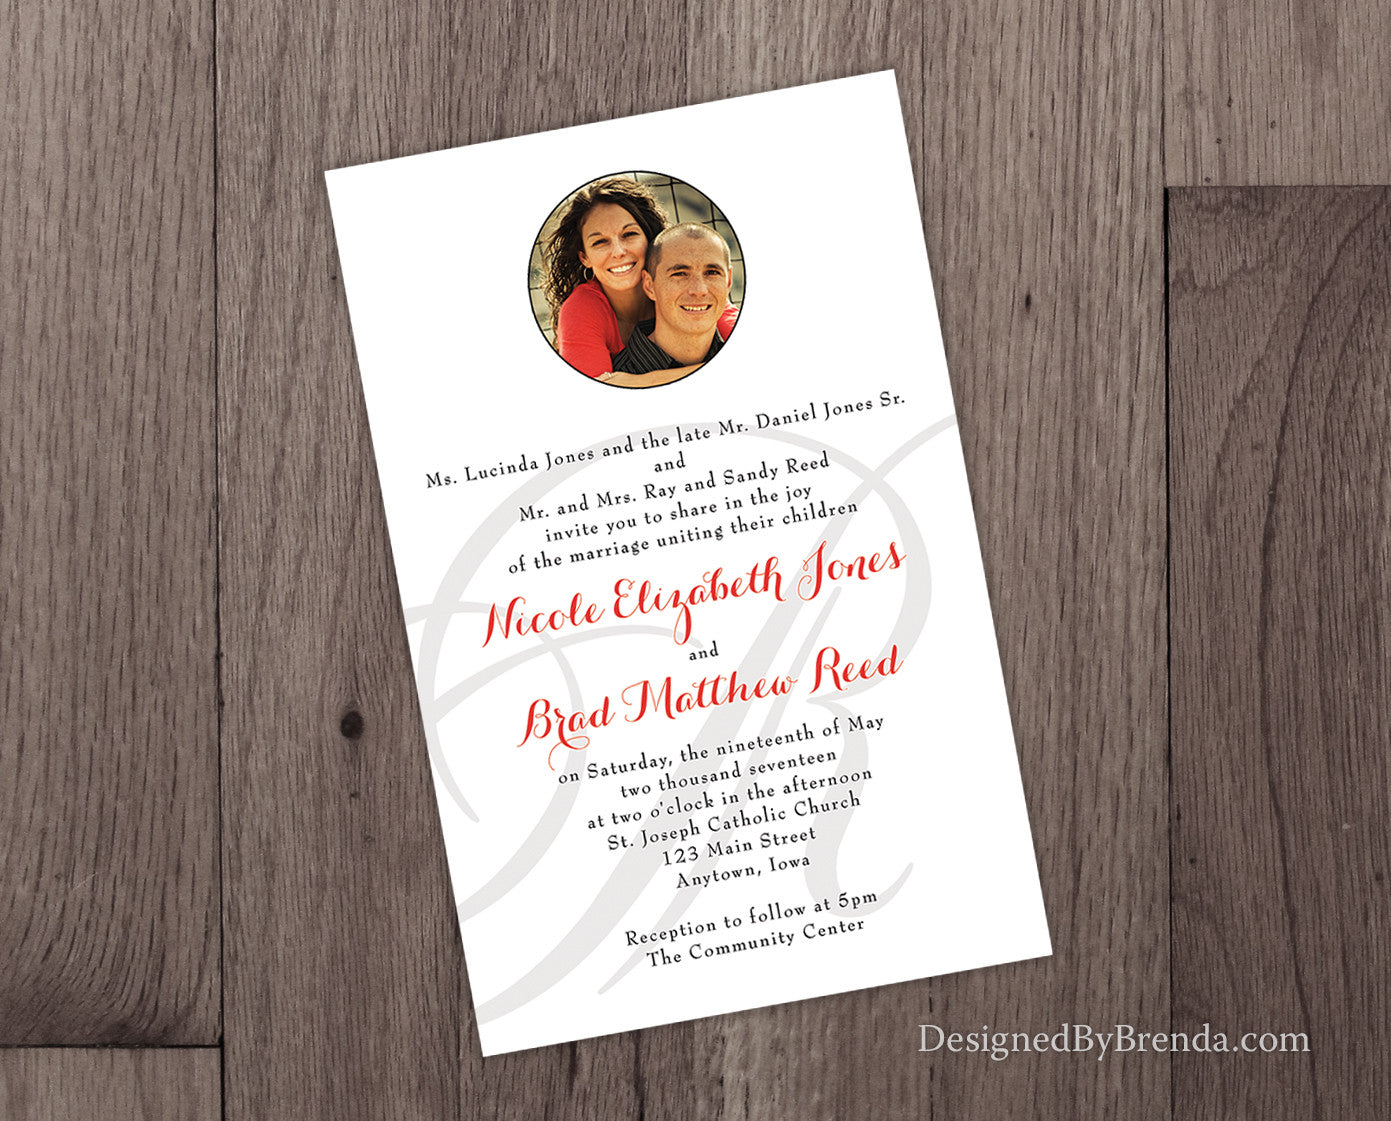 Simple Wedding Invitations with Photo and Letter Monogram Watermark - Red, Black & White